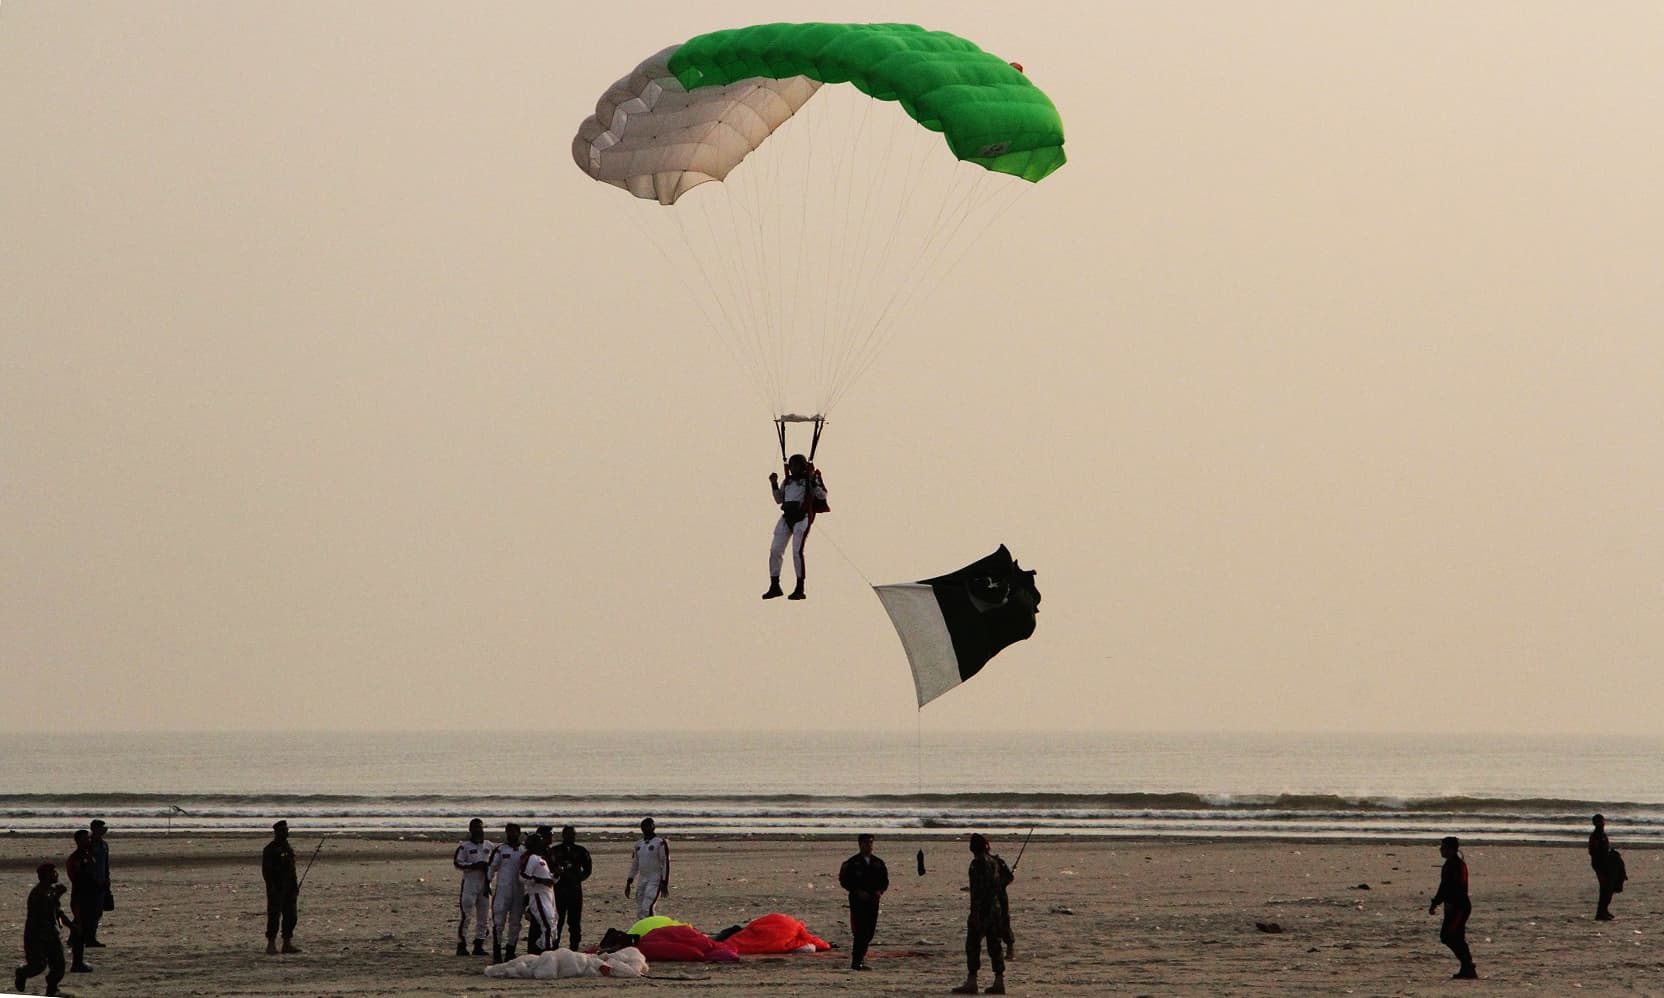 Commander SSG-N Imran Rana carries national flag during para jump at sea view. —ISPR